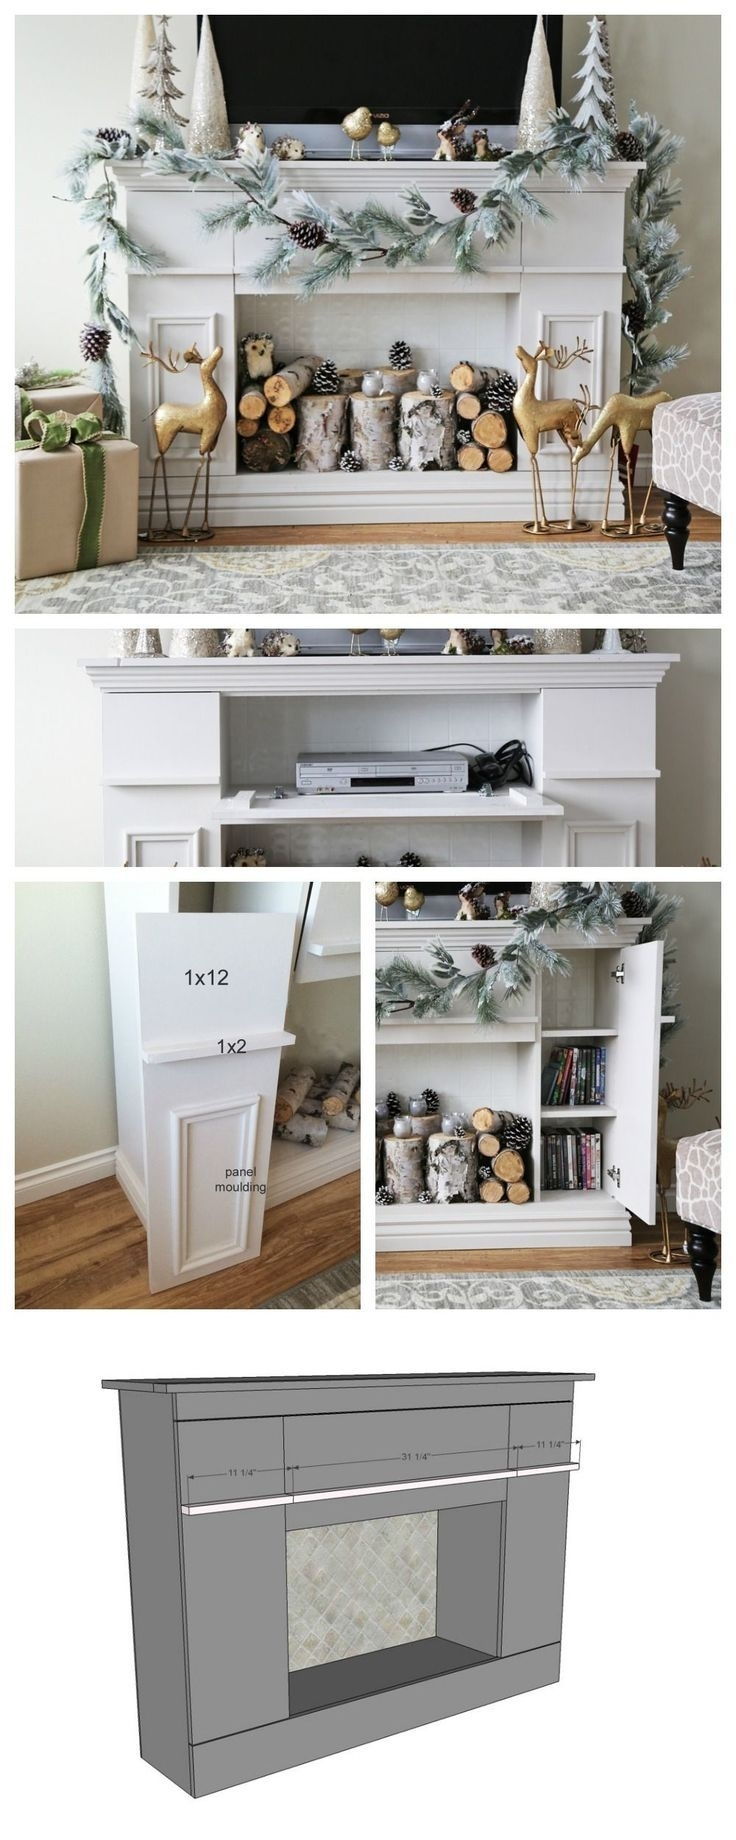 Inspiration about 9 Best Fireplace Images On Pinterest | Fire Places, Living Room And With Recent Marbled Axton Sideboards (#15 of 20)